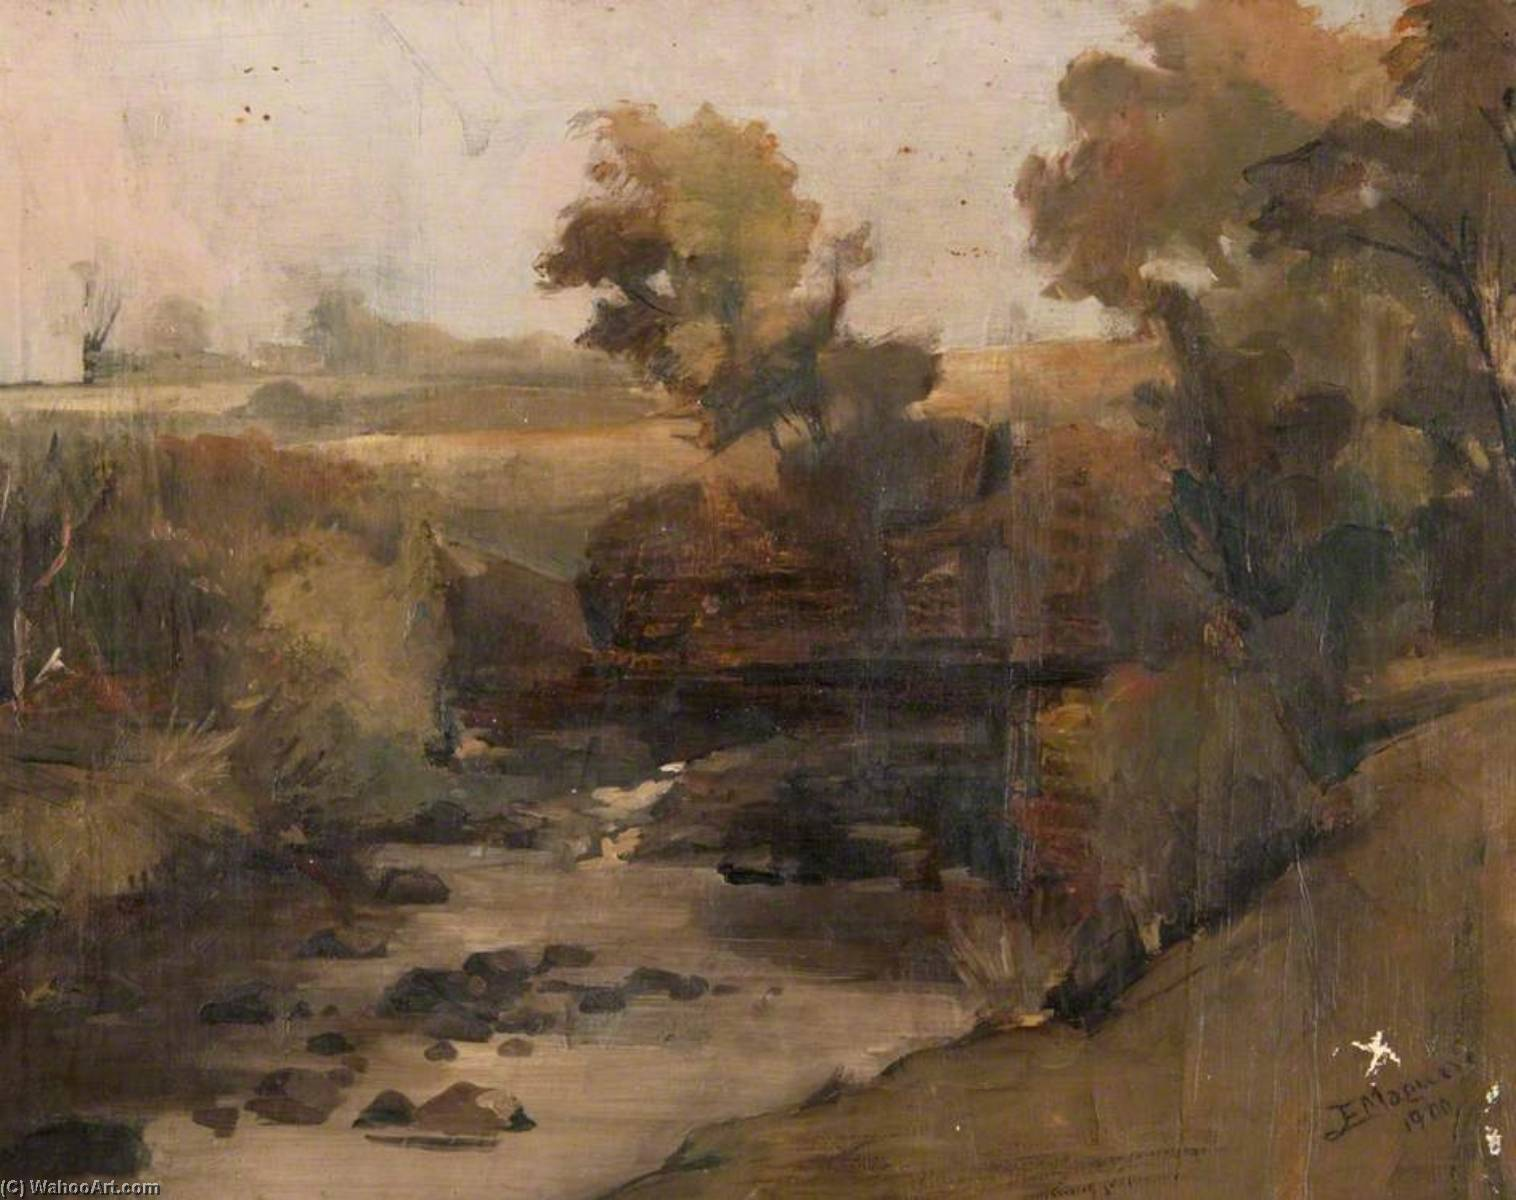 Countryside with a Stream, Oil On Canvas by John Elliot Maguire